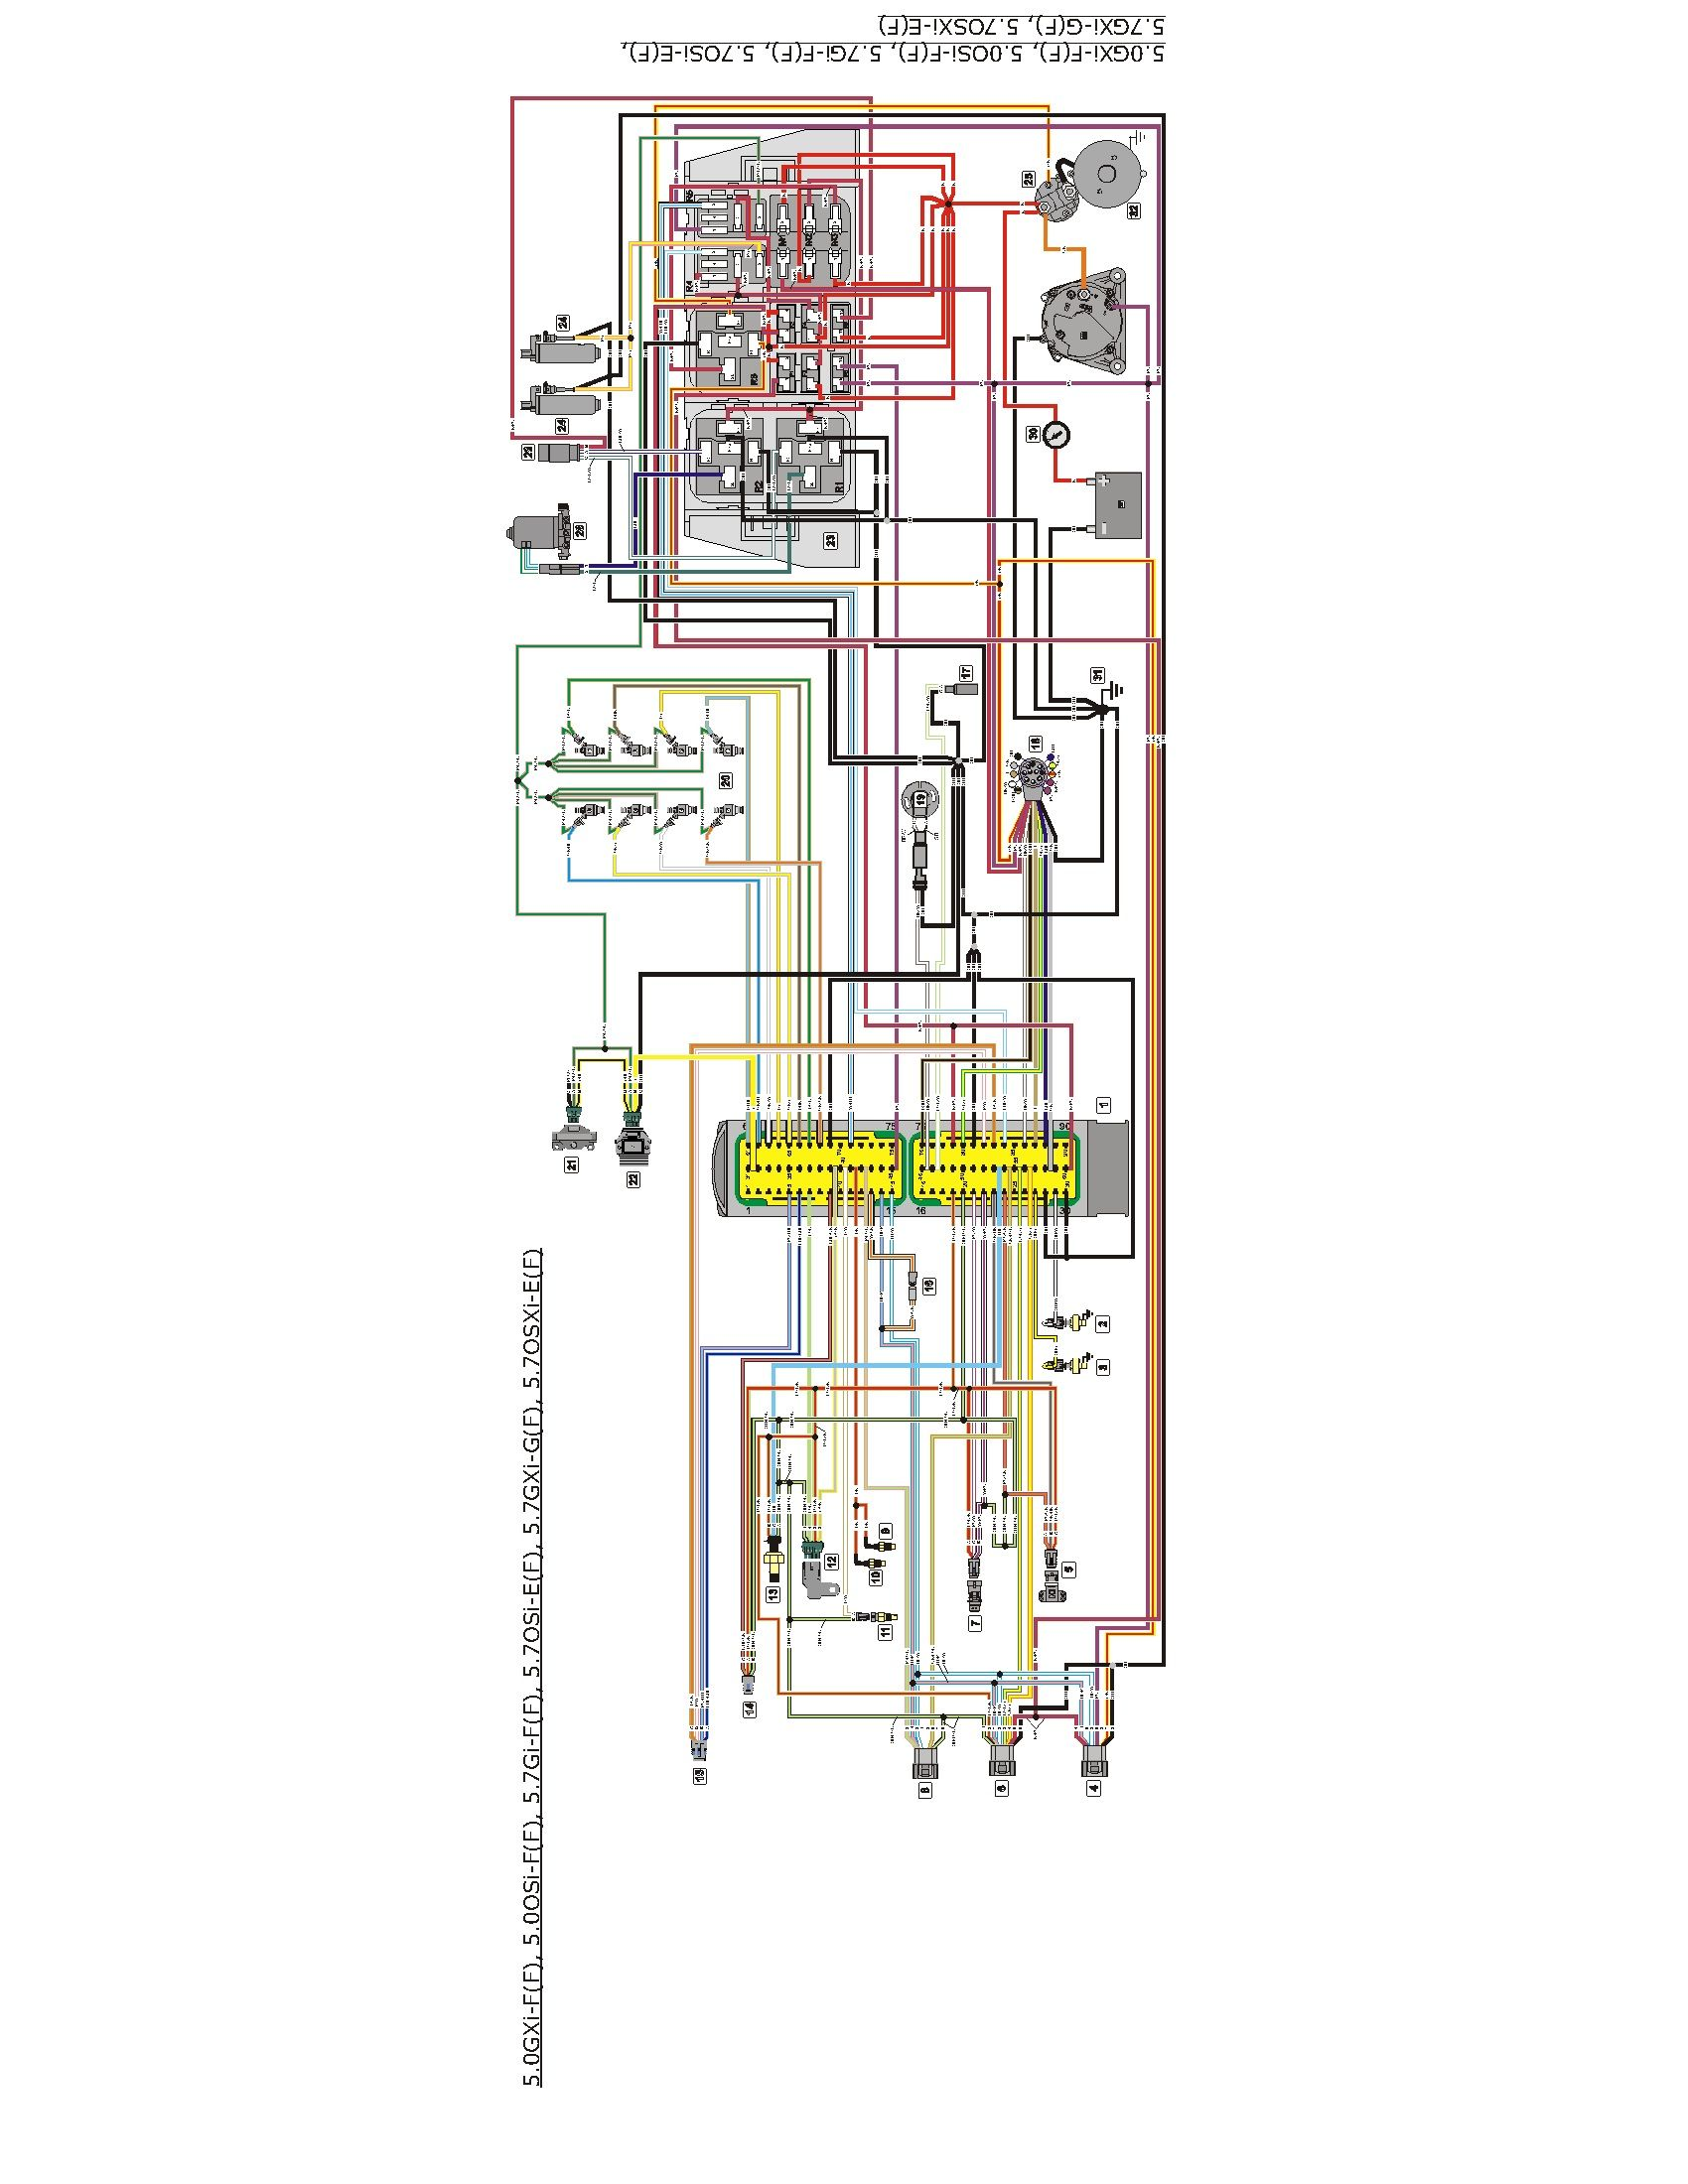 medium resolution of volvo penta 5 7 engine wiring diagram mercury outboard boat engine home design boats